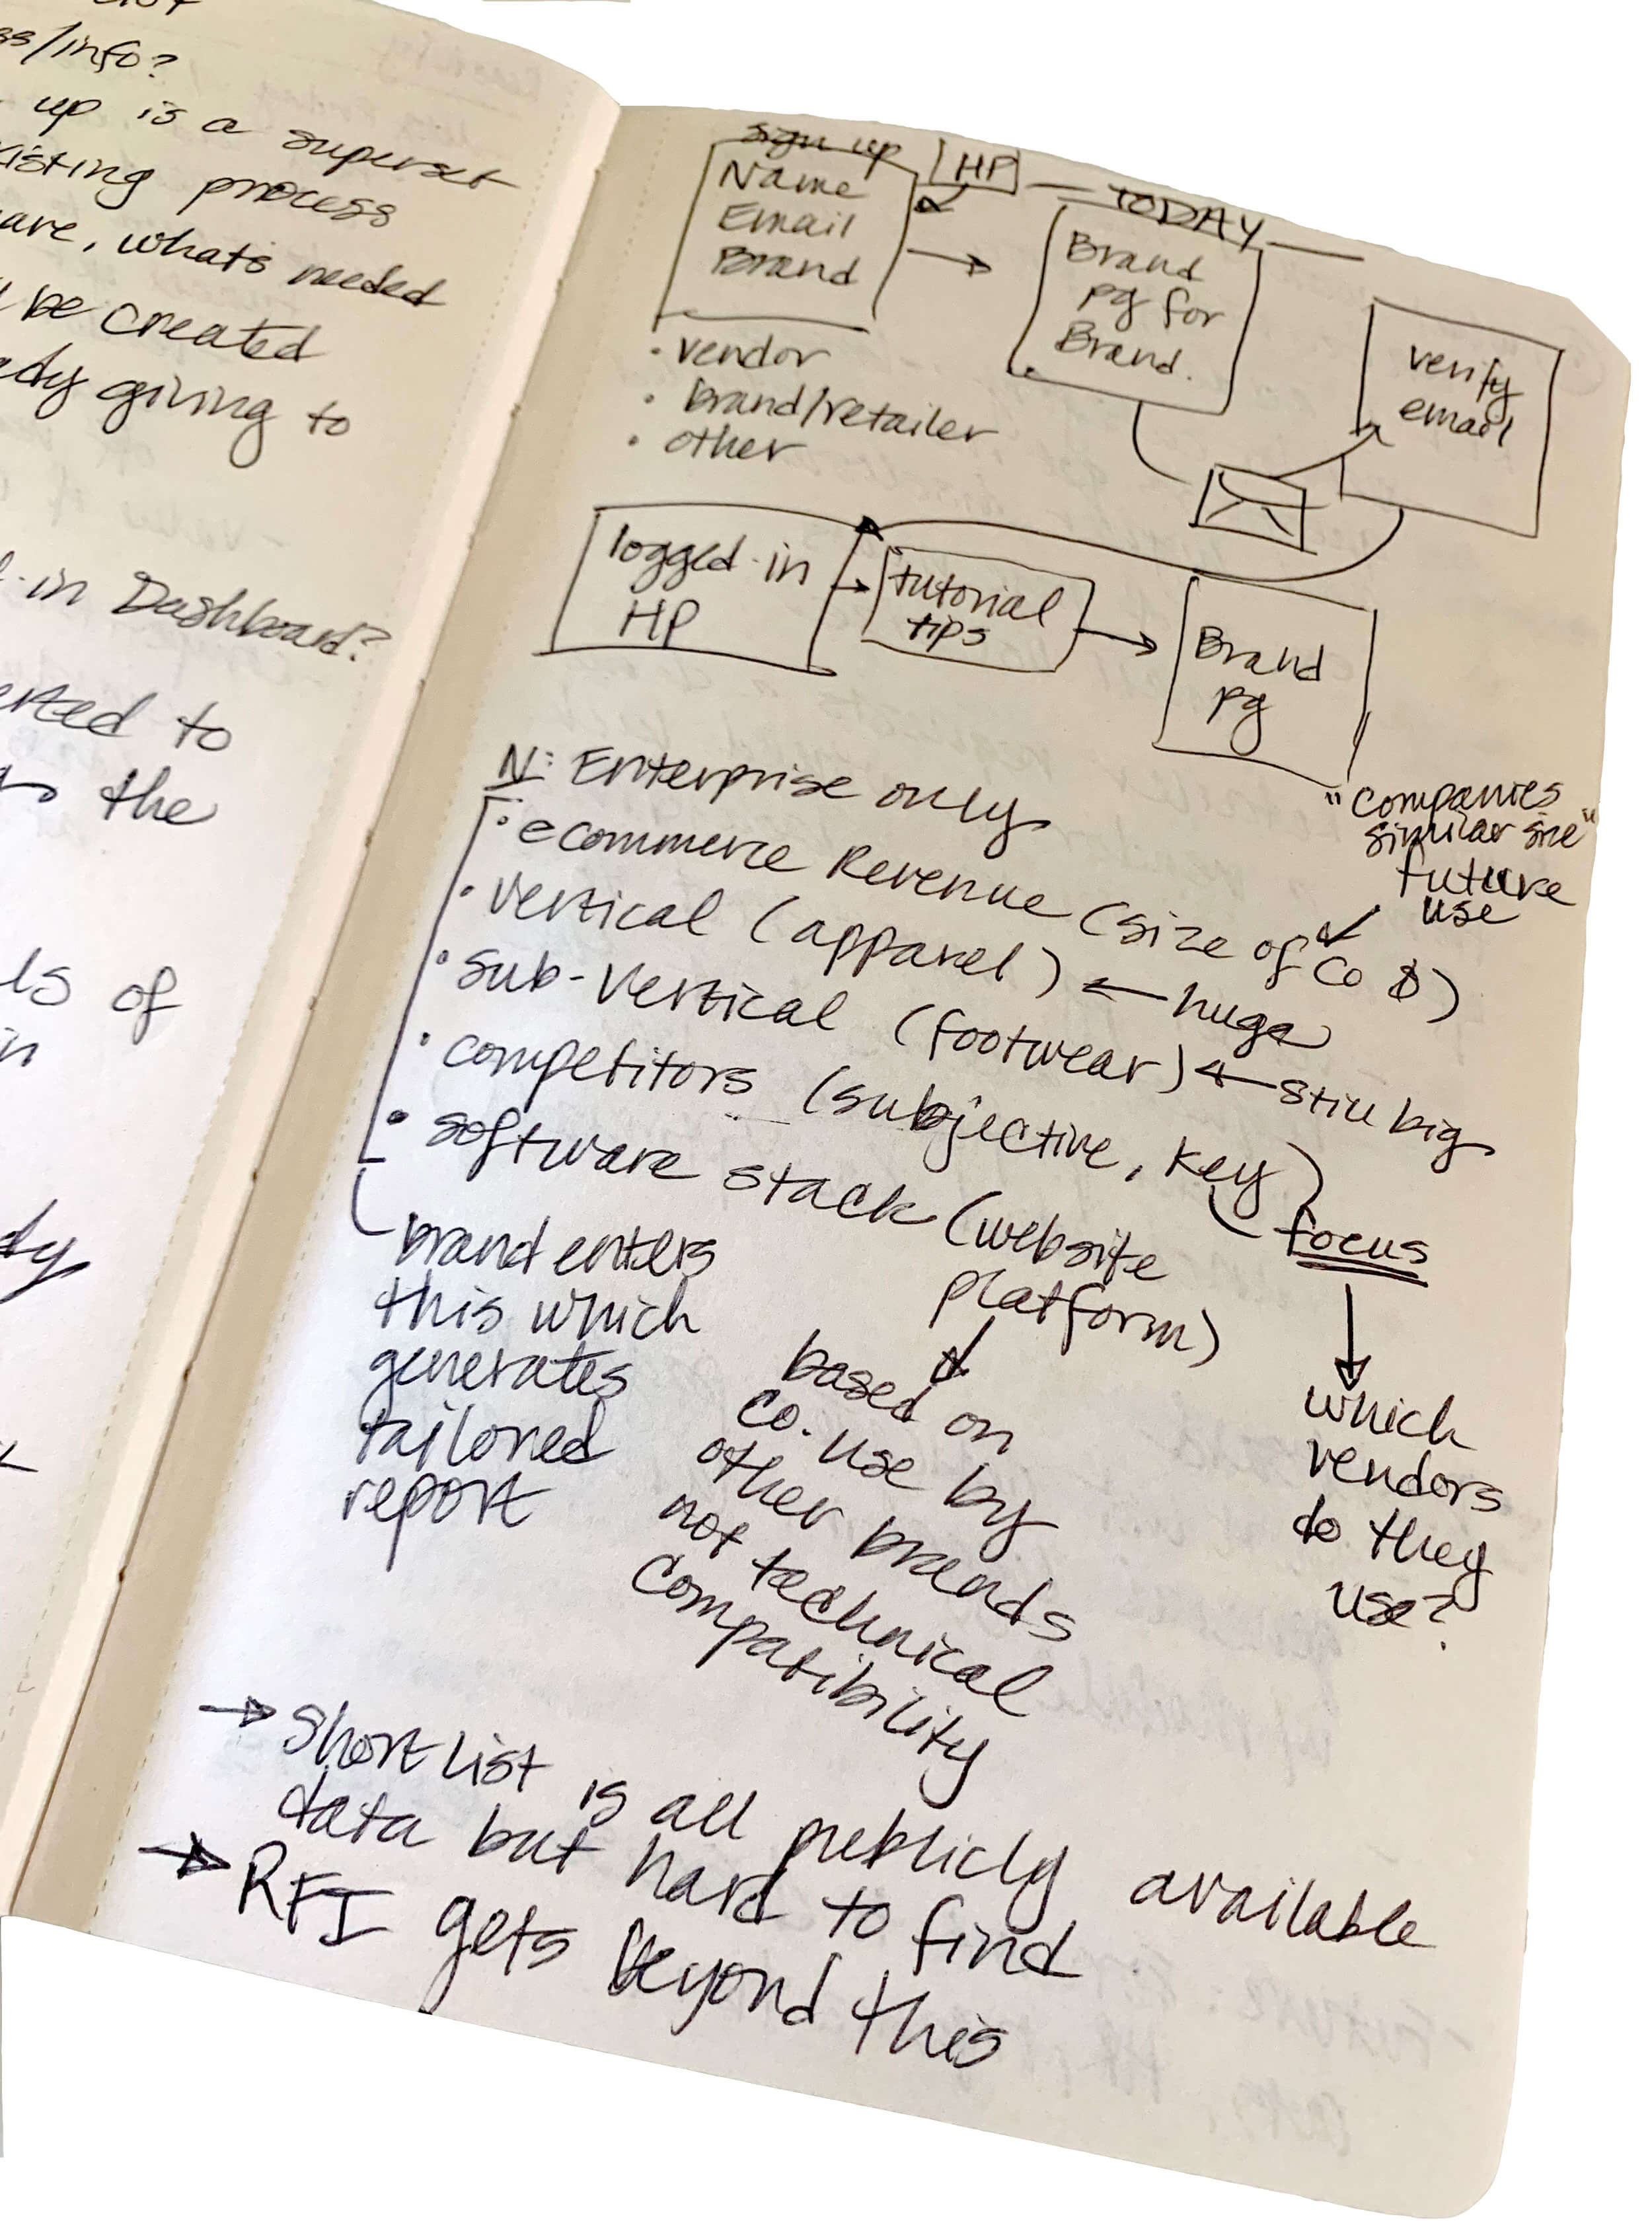 Photograph of a notebook page showing sketches and writing about the target users of Reachify ShortList